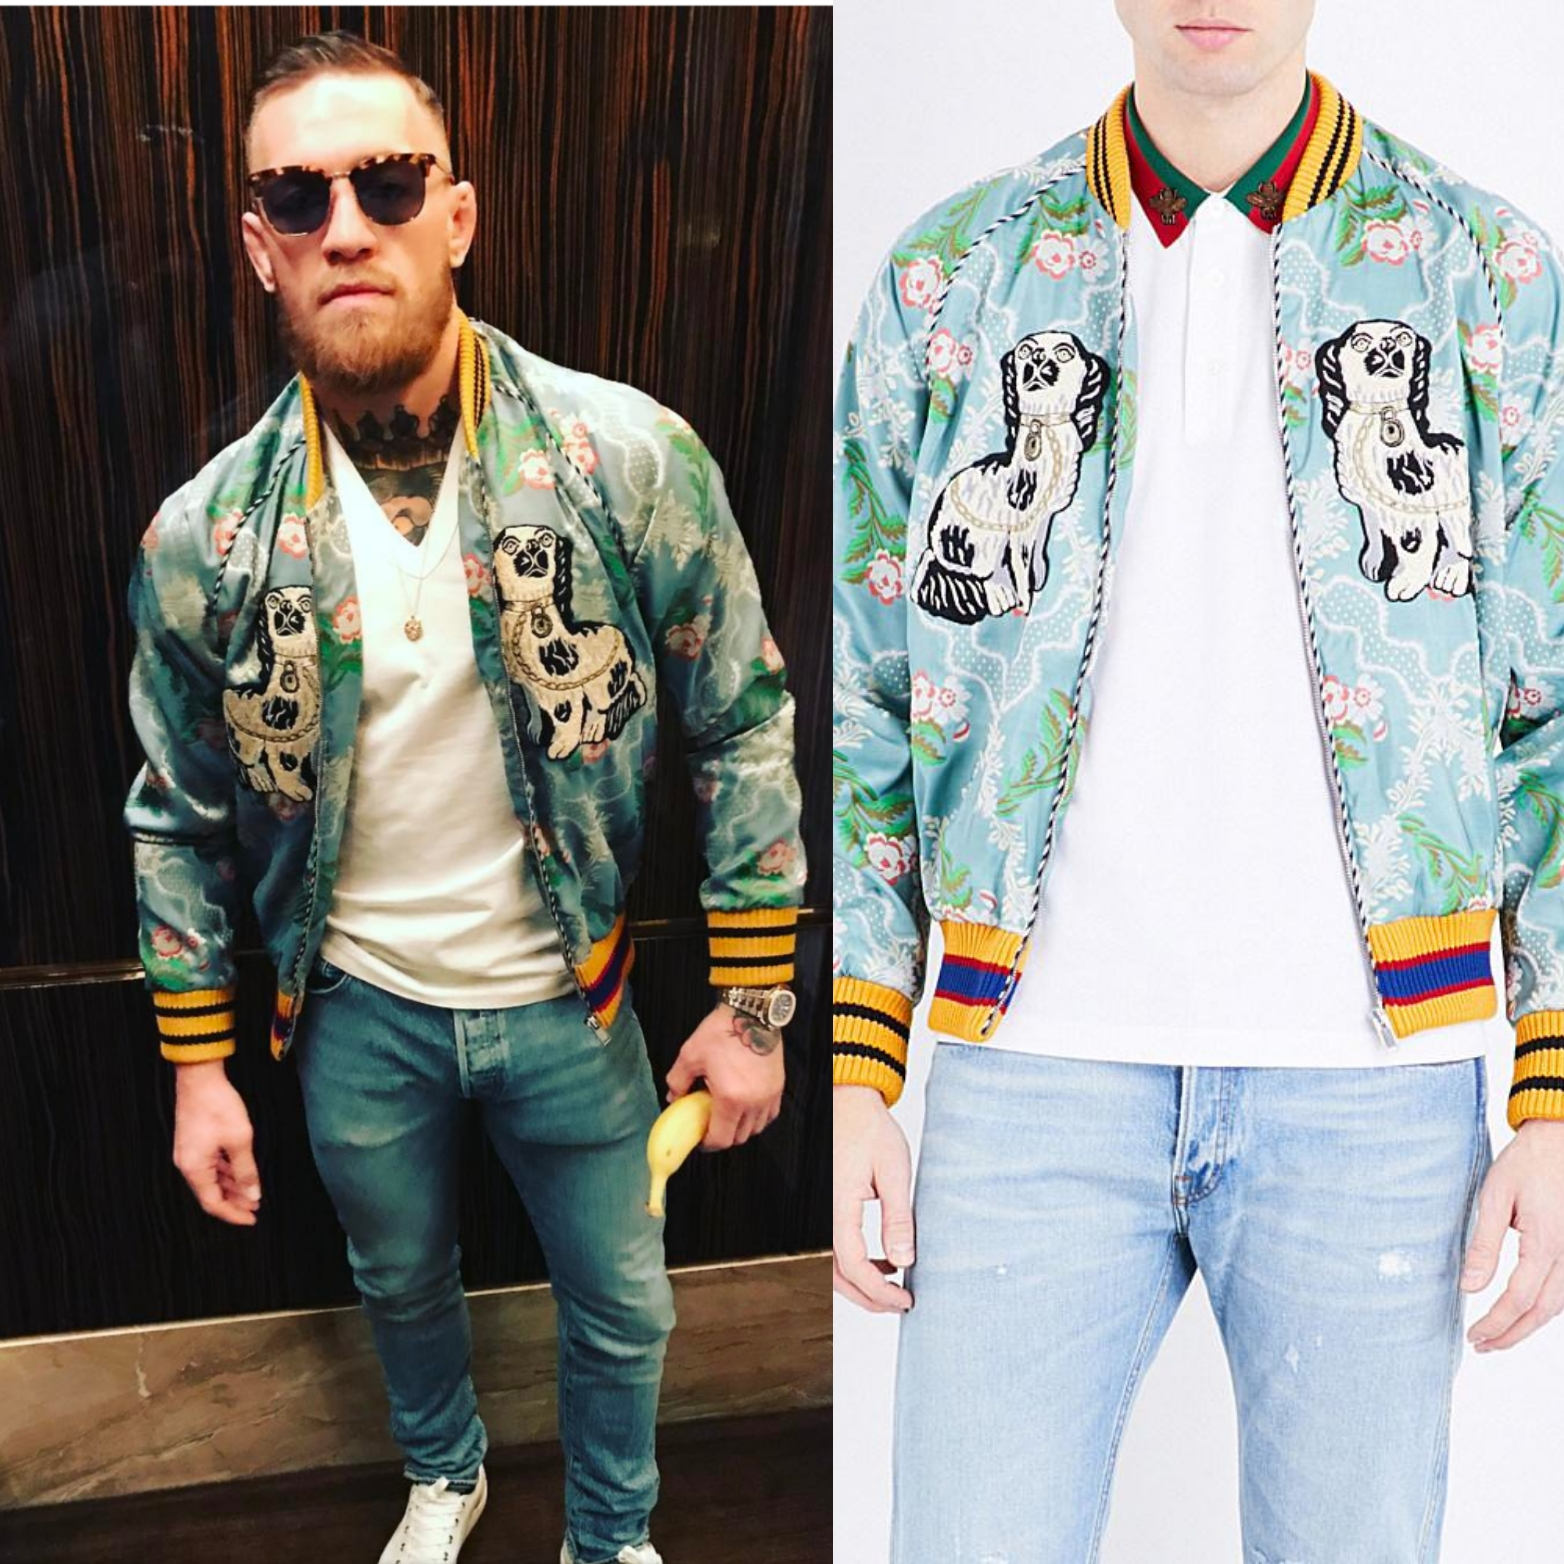 710fee65ff5 Conor Mcgregor s Instagram Gucci Floral Men s Fashion Jacket ...